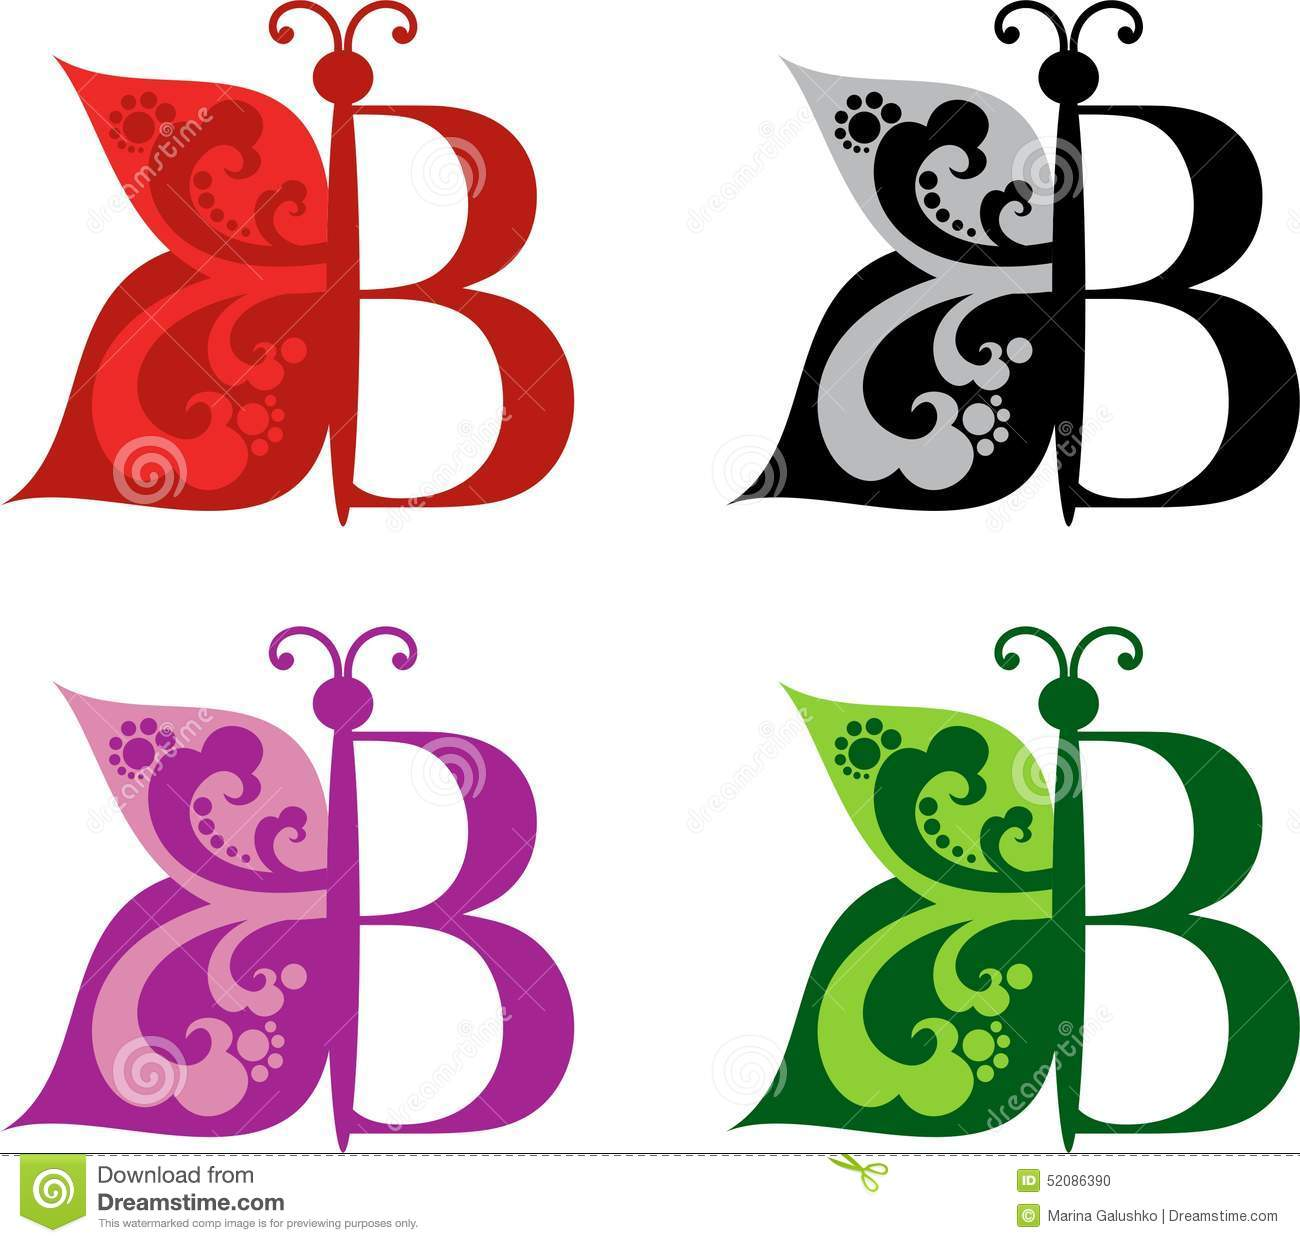 Logotype butterfly and letter b in different colour variants on a - B Background Butterfly Colour Different Letter Logotype Variants